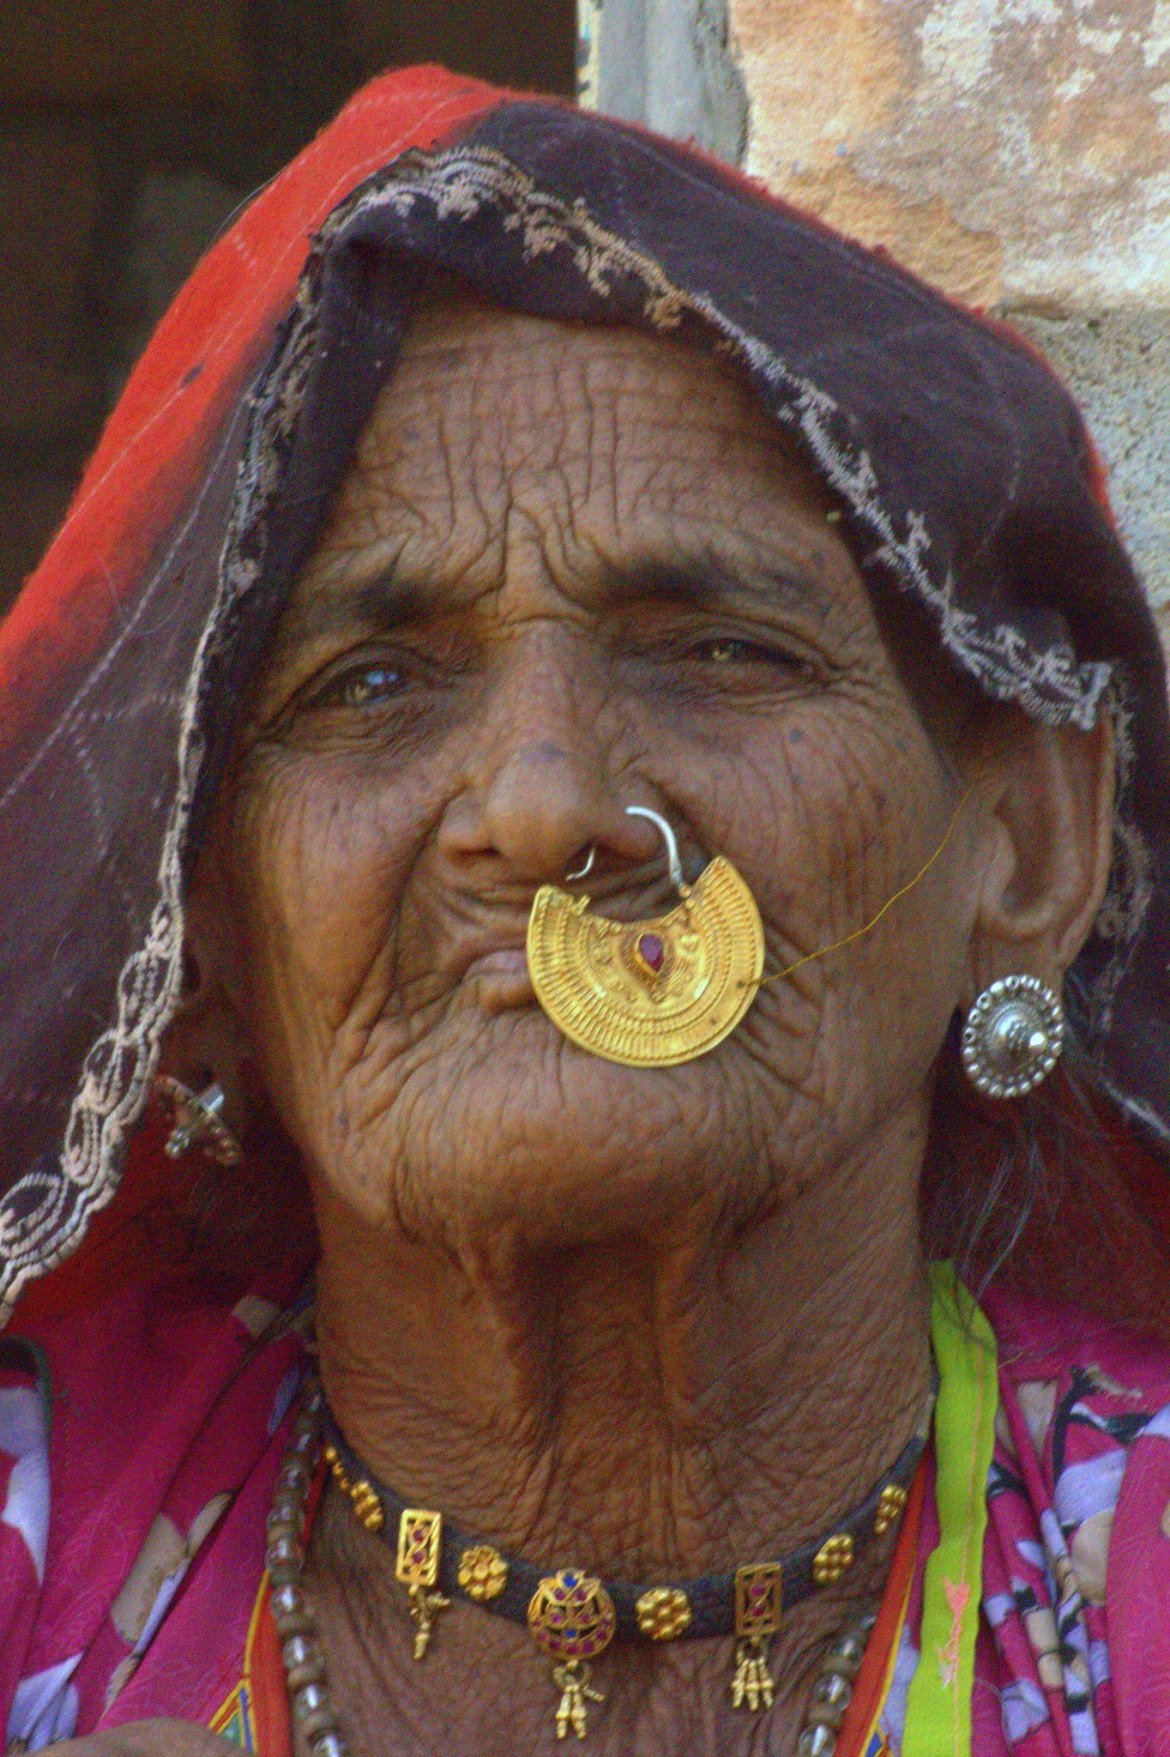 An old woman of Salawas